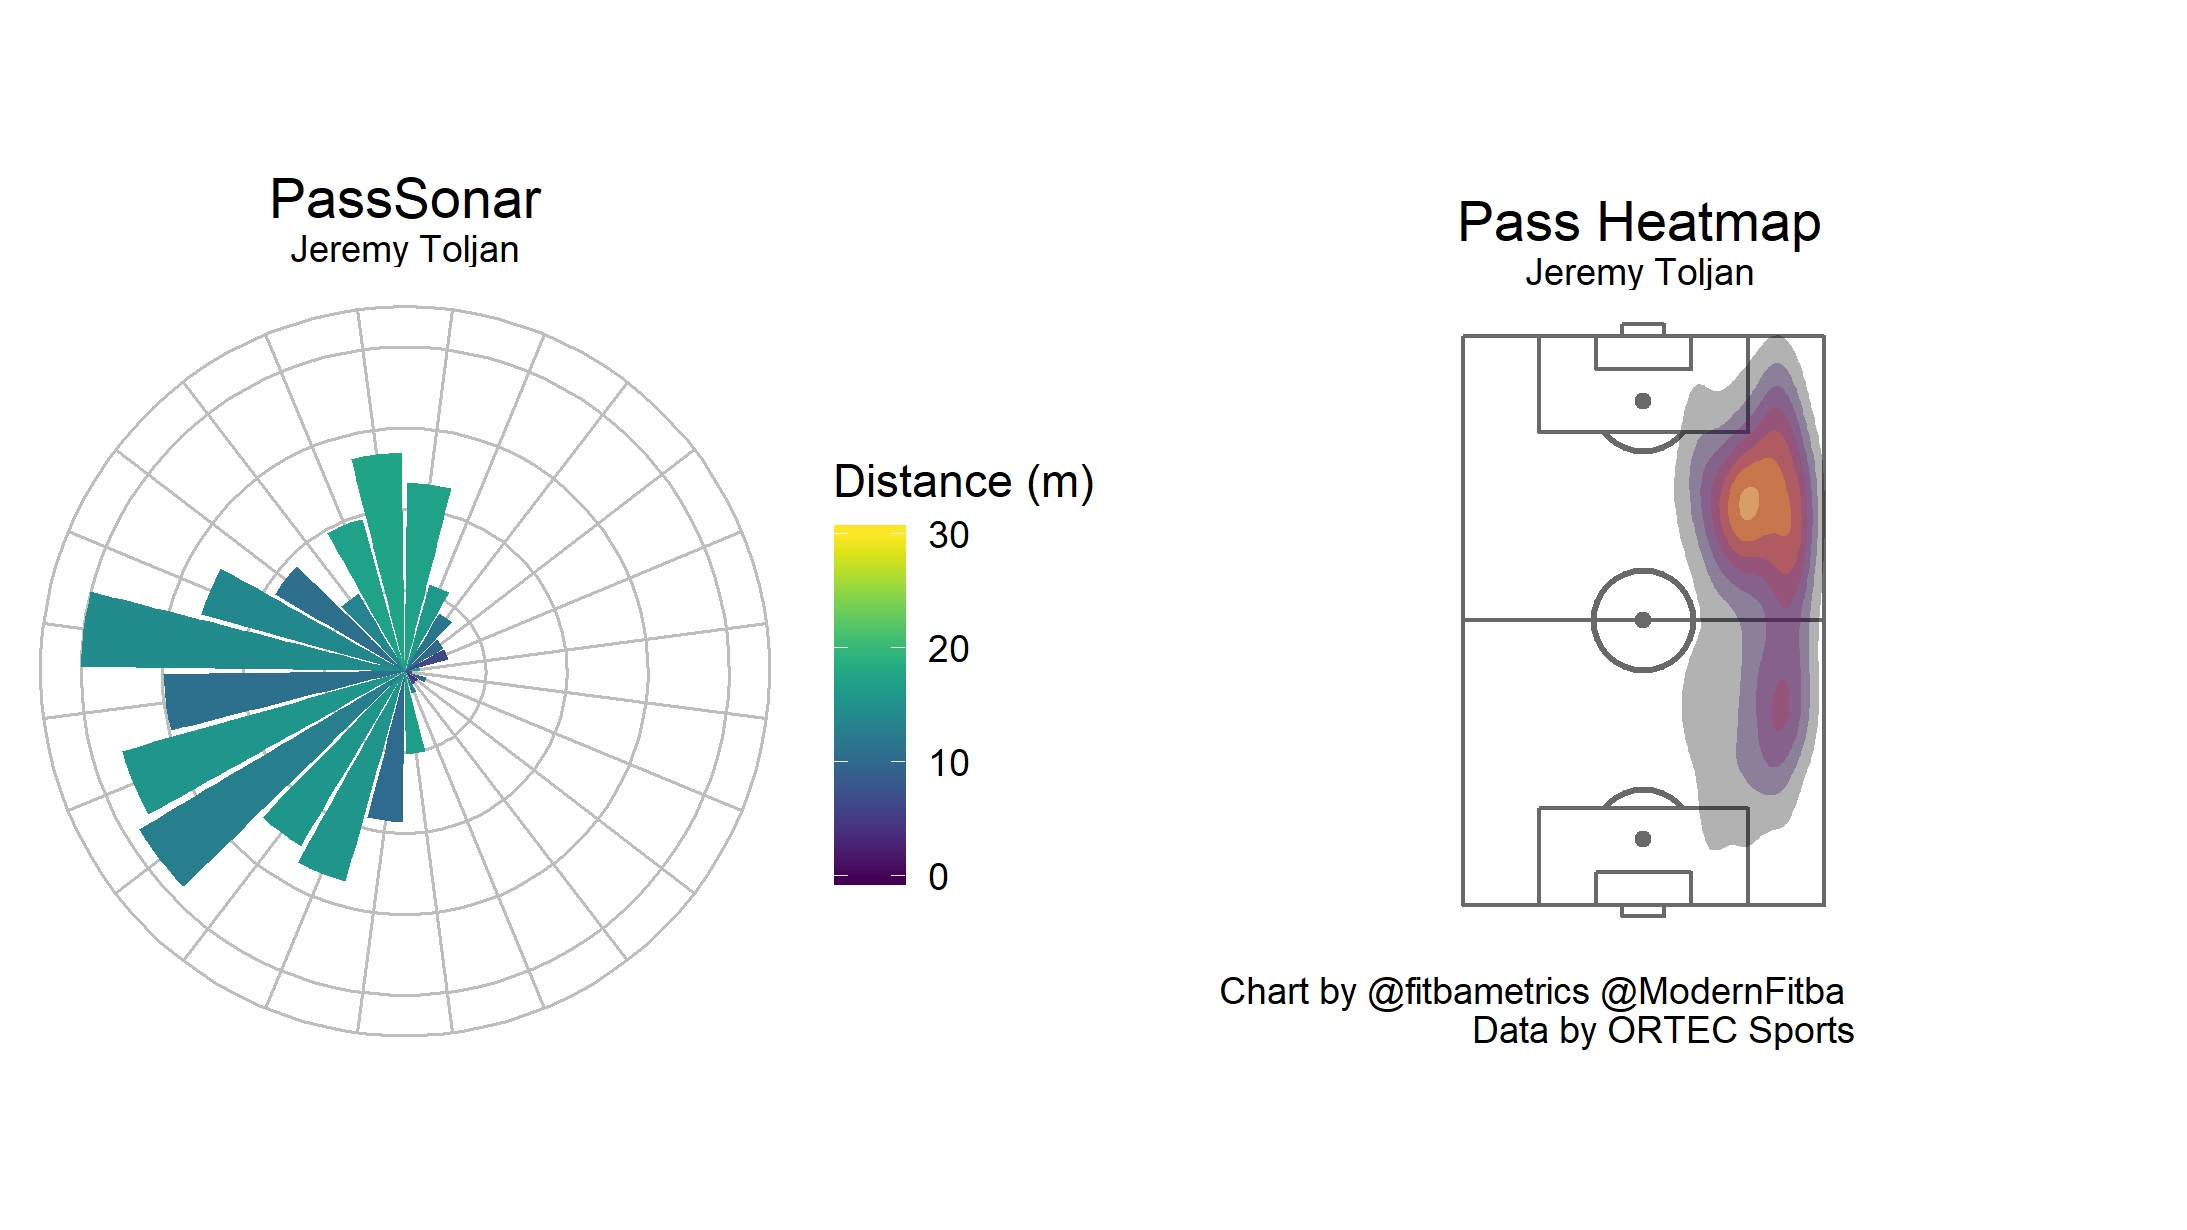 Figure 5. Jeremy Toljan (Celtic) PassSonar and pass location heatmap.